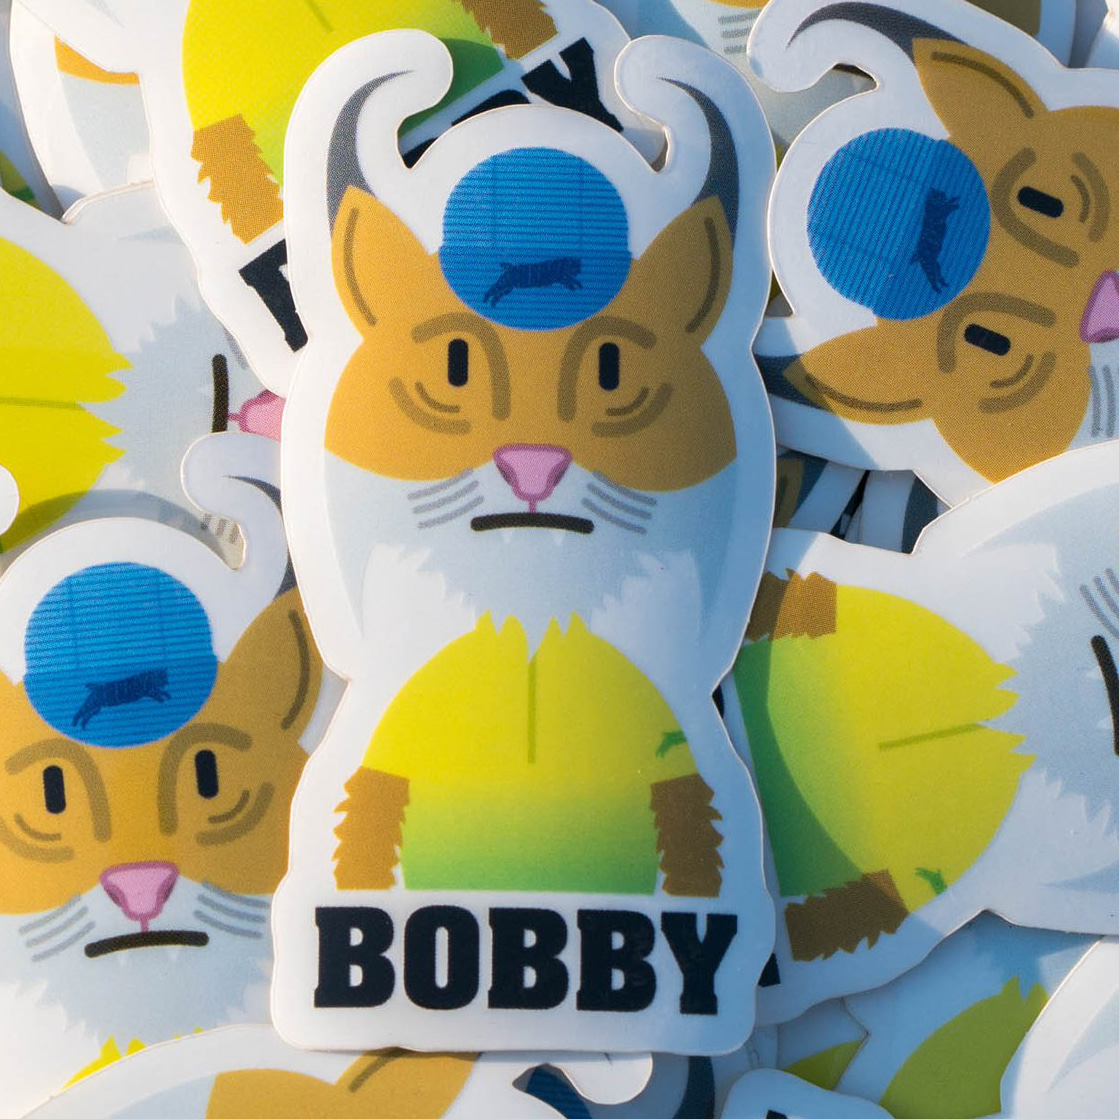 BOBBY PORTRAIT STICKER